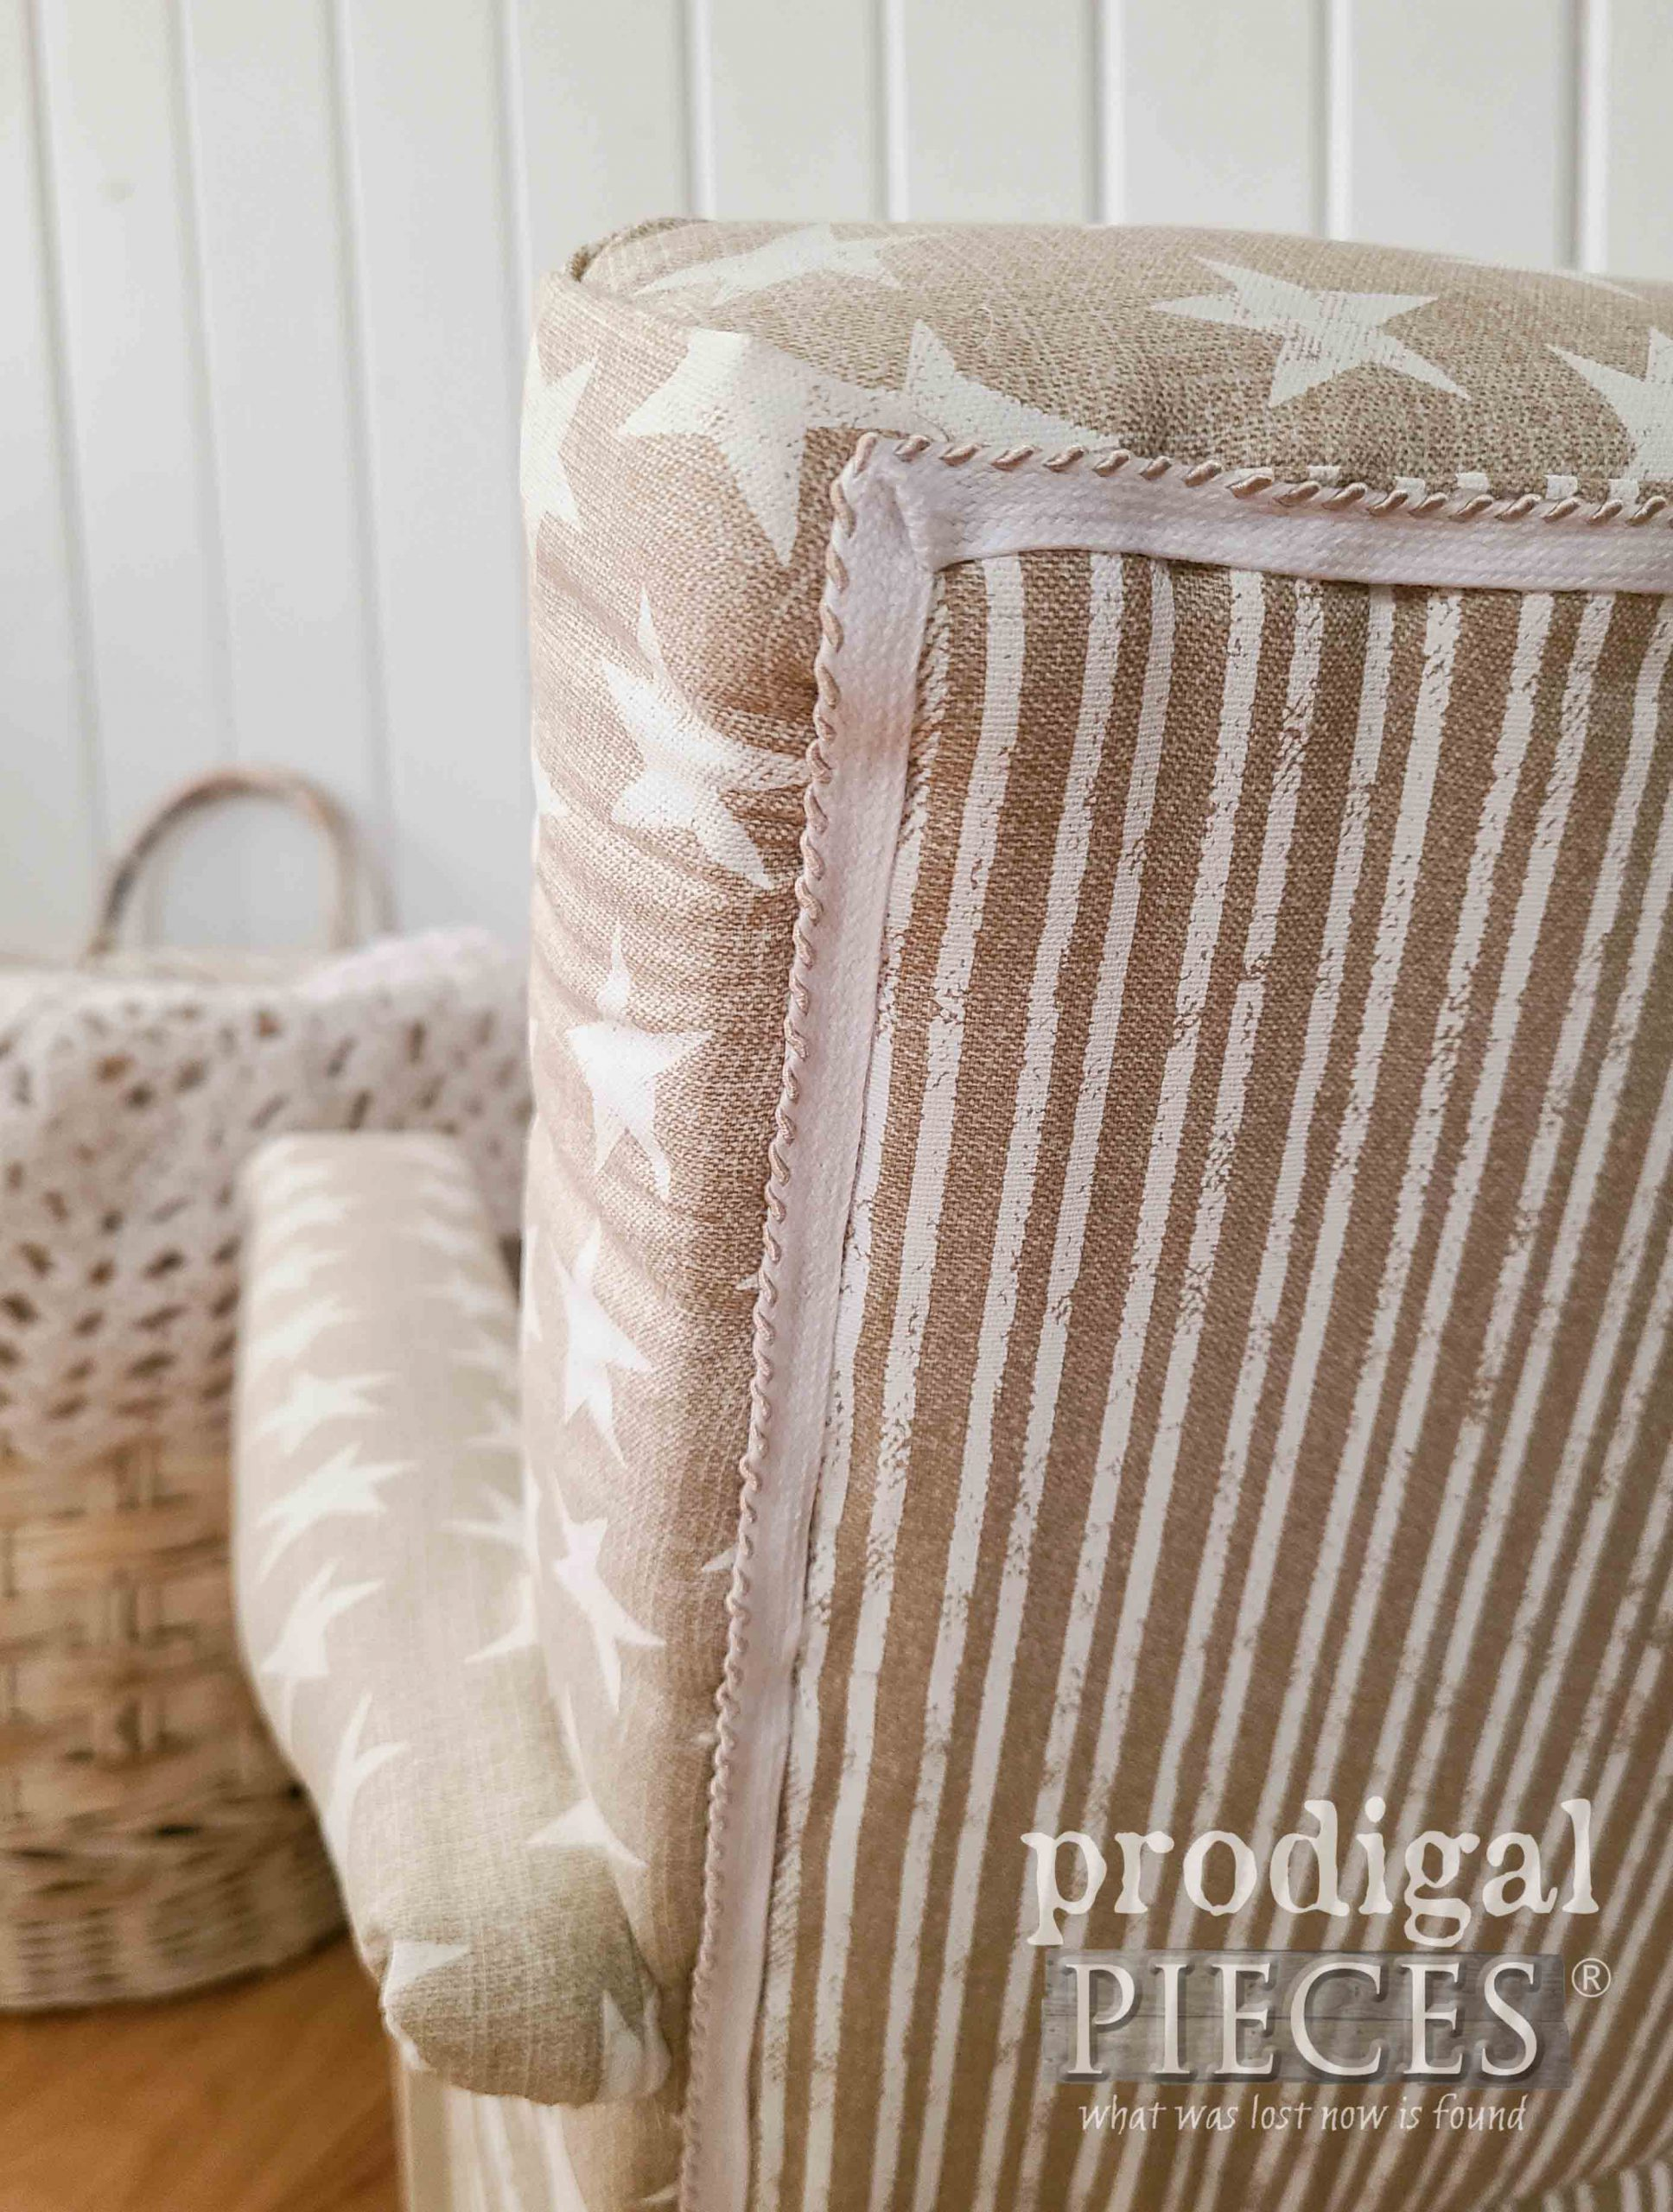 Child's Rocker Upholstery Trim Up Close by Prodigal Pieces | prodigalpieces.com #prodigalpieces #furniture #diy #home #homedecor